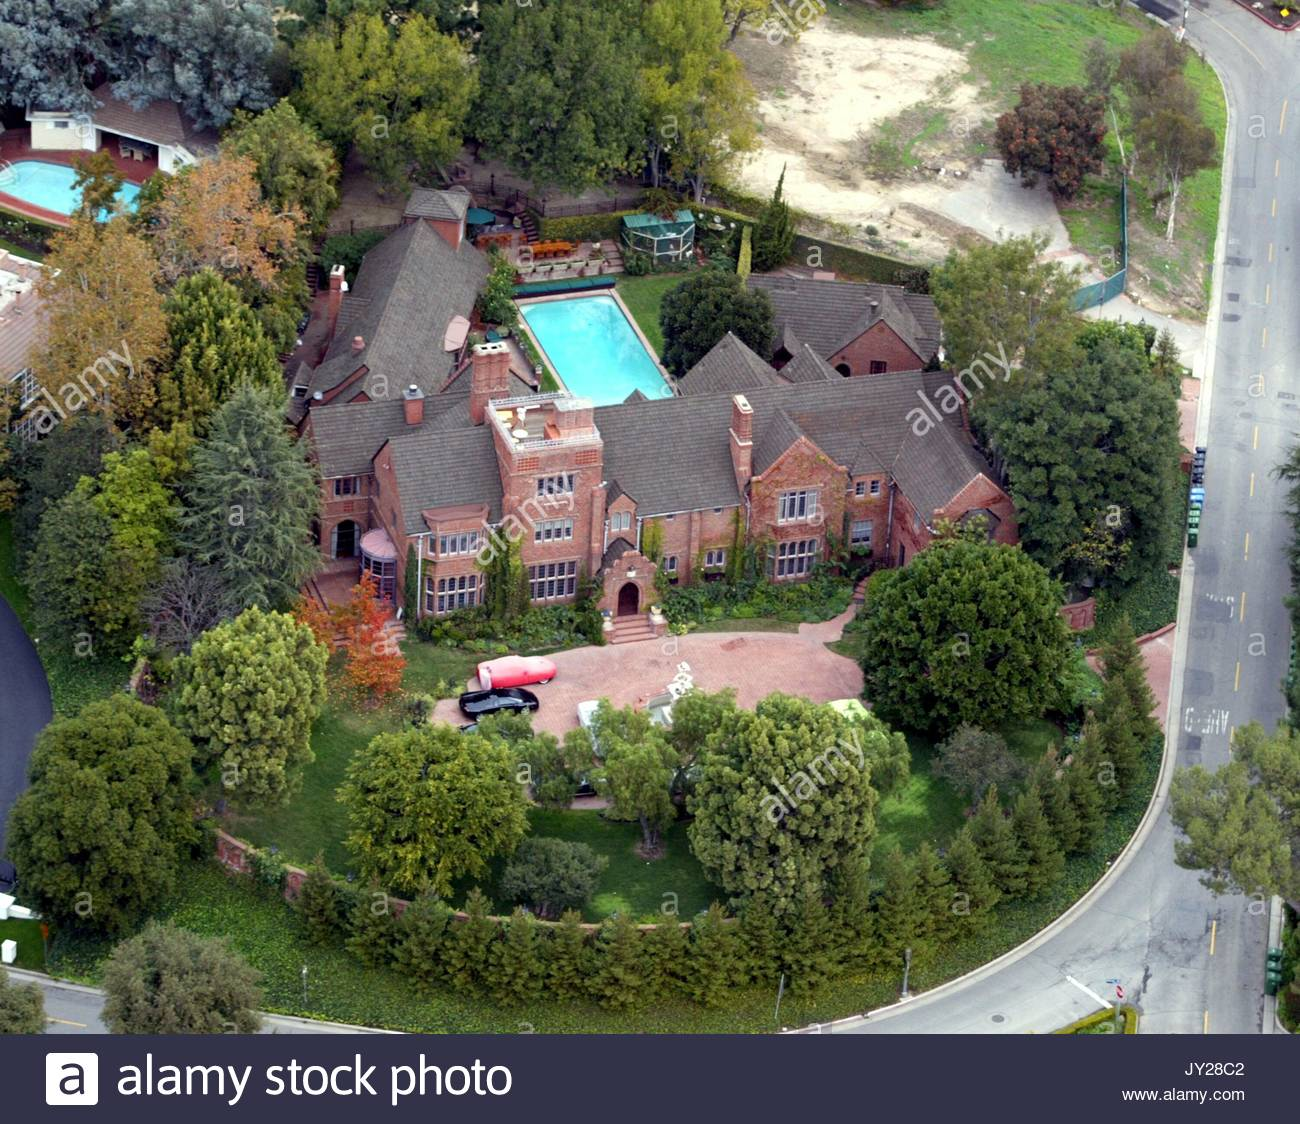 Olympic Size Swimming Pools With Mansions: Olympic Swimming Pool Aerial Stock Photos & Olympic